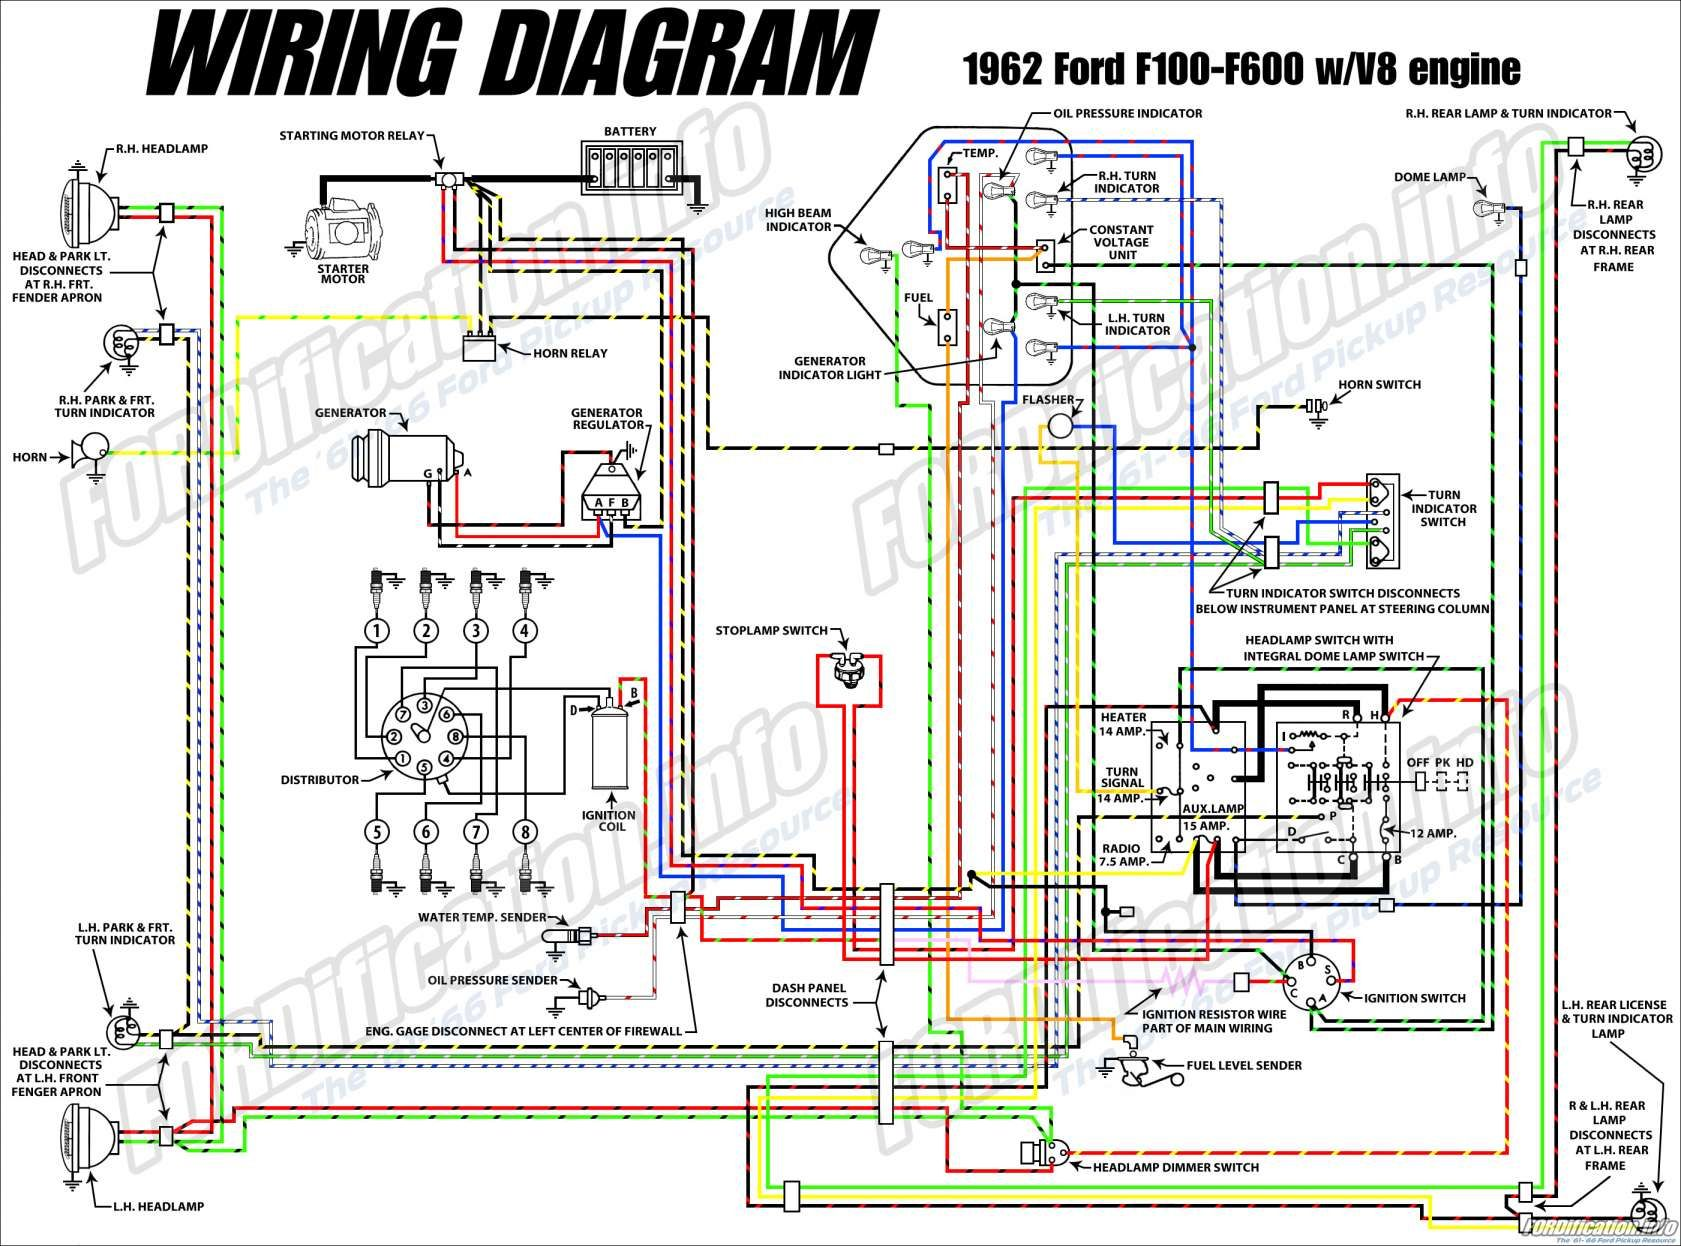 Electric Wiring Diagram Instrument Panel Chevy Trucks 1963 Chevy Truck Chevy C10